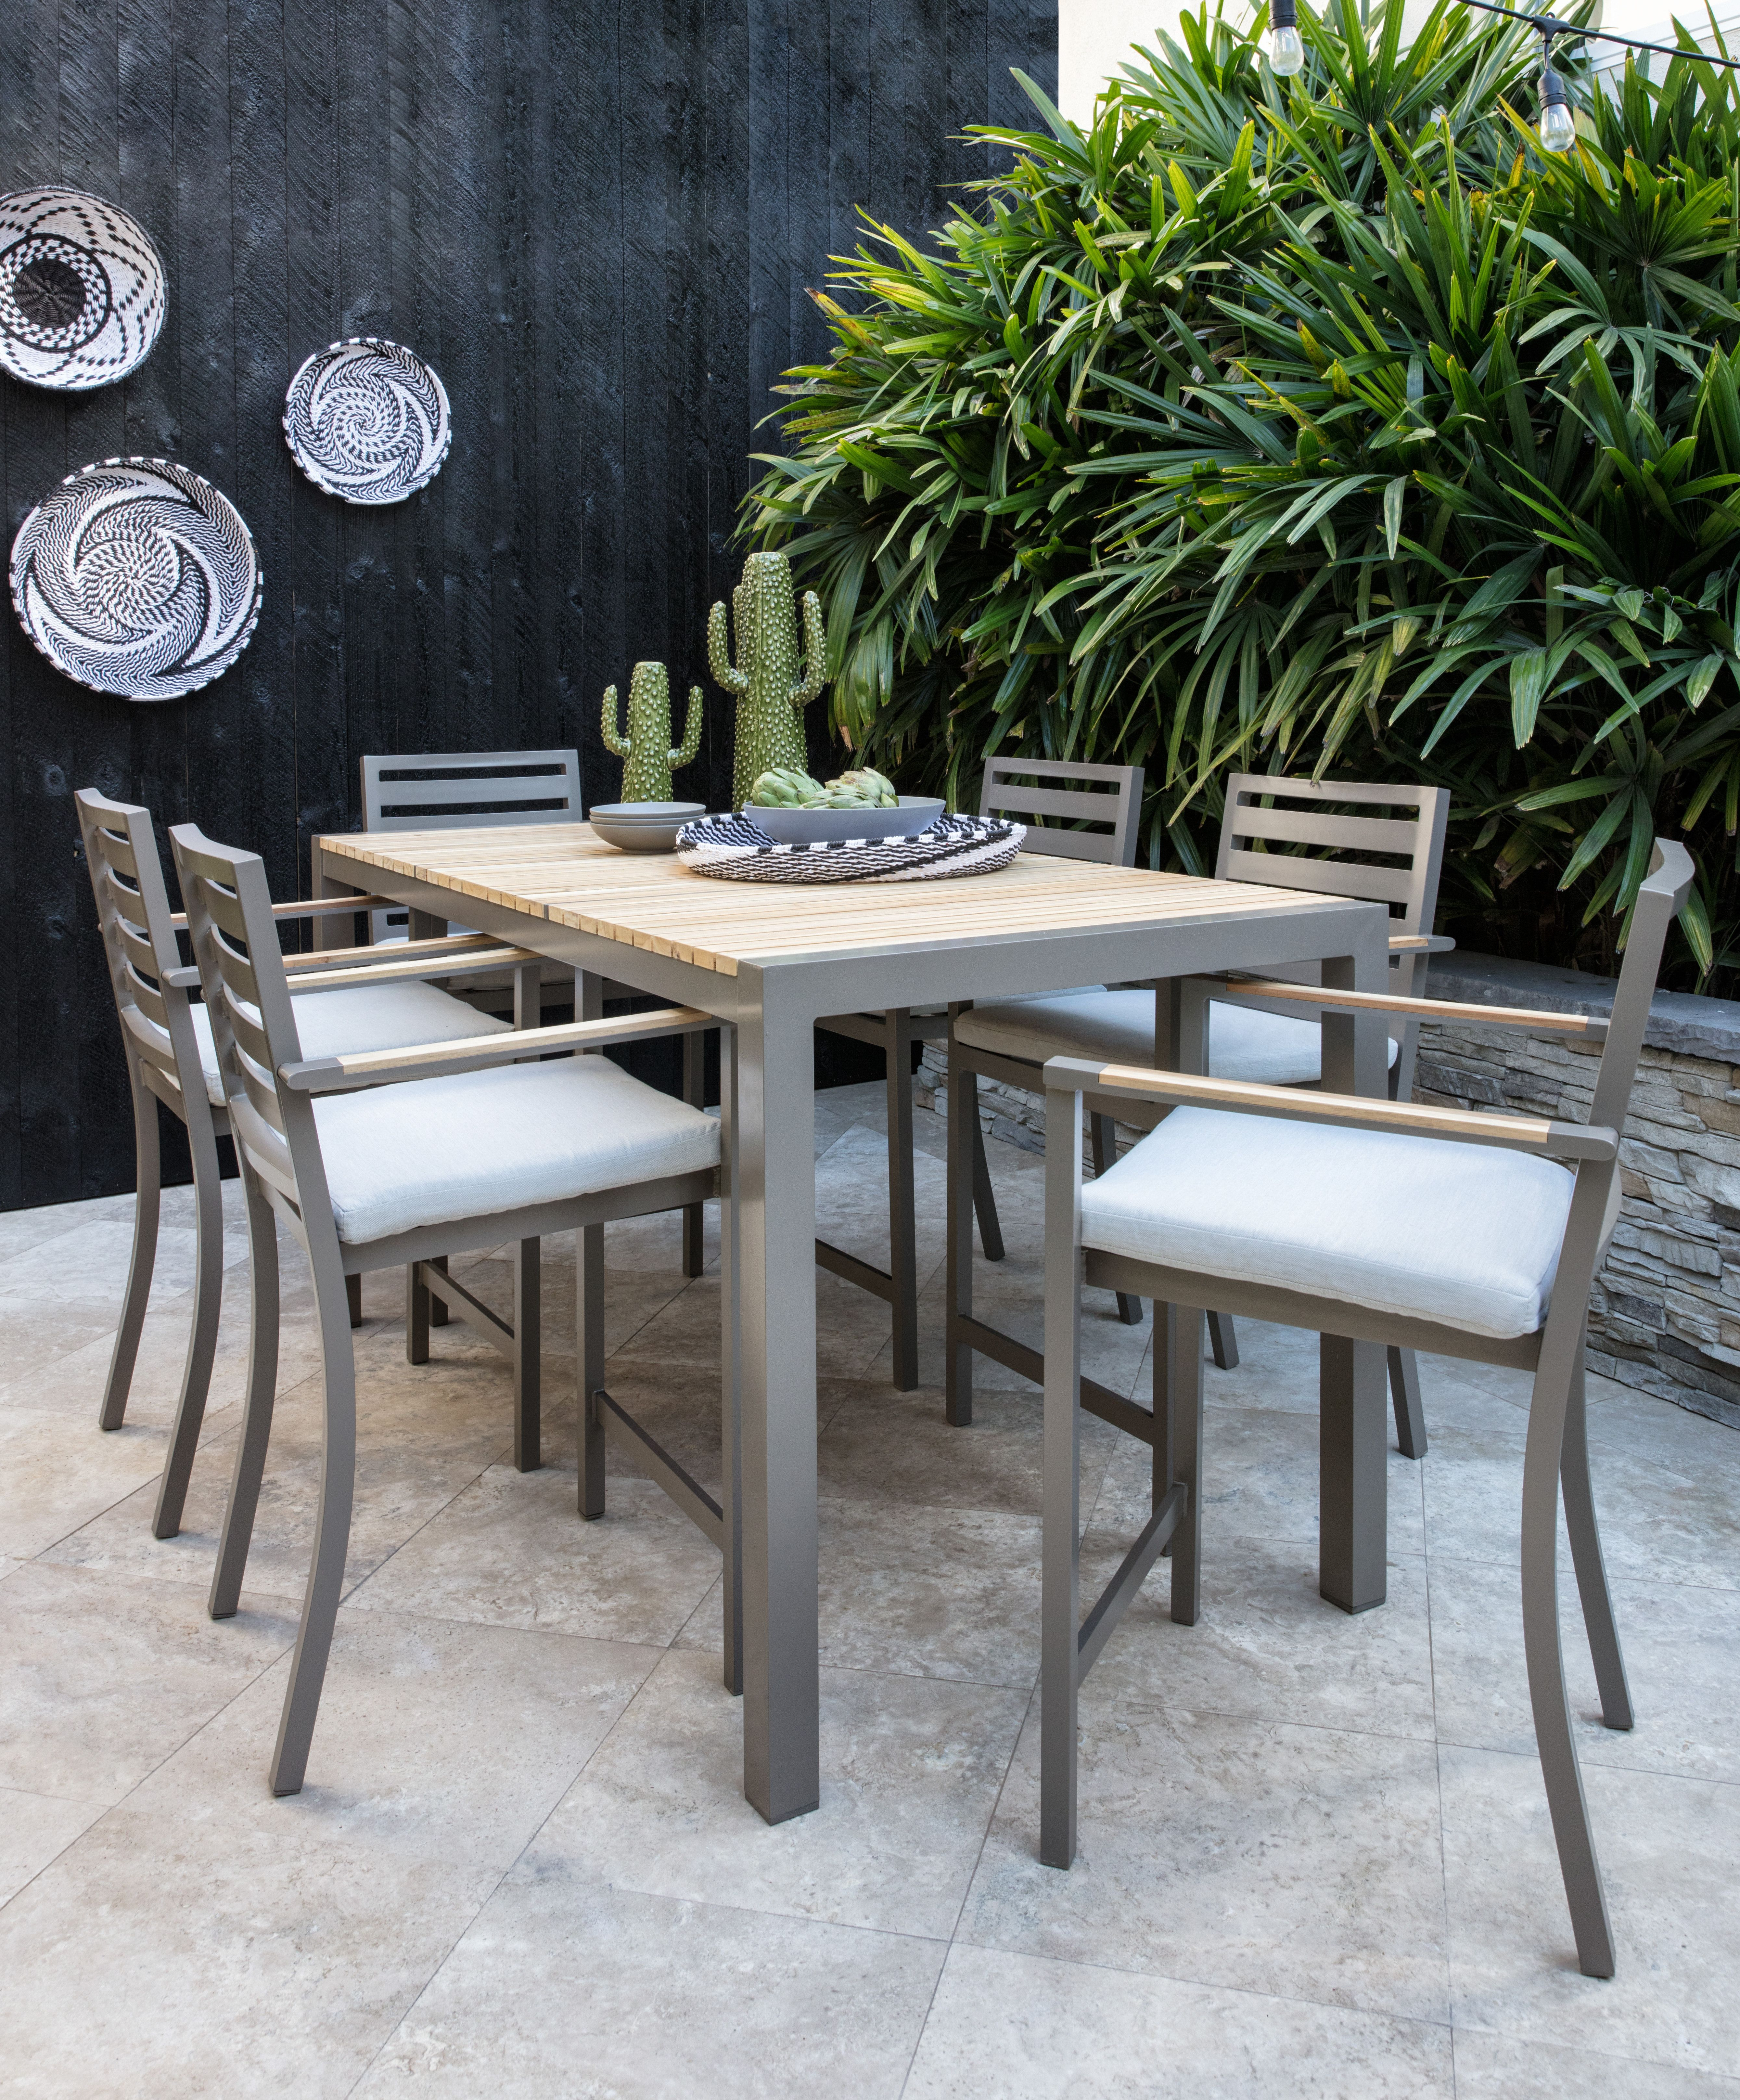 Outdoor Brasilia Teak 7 Piece High Dining Set | Outdoor Furniture Within Outdoor Koro Swivel Chairs (Photo 21 of 25)